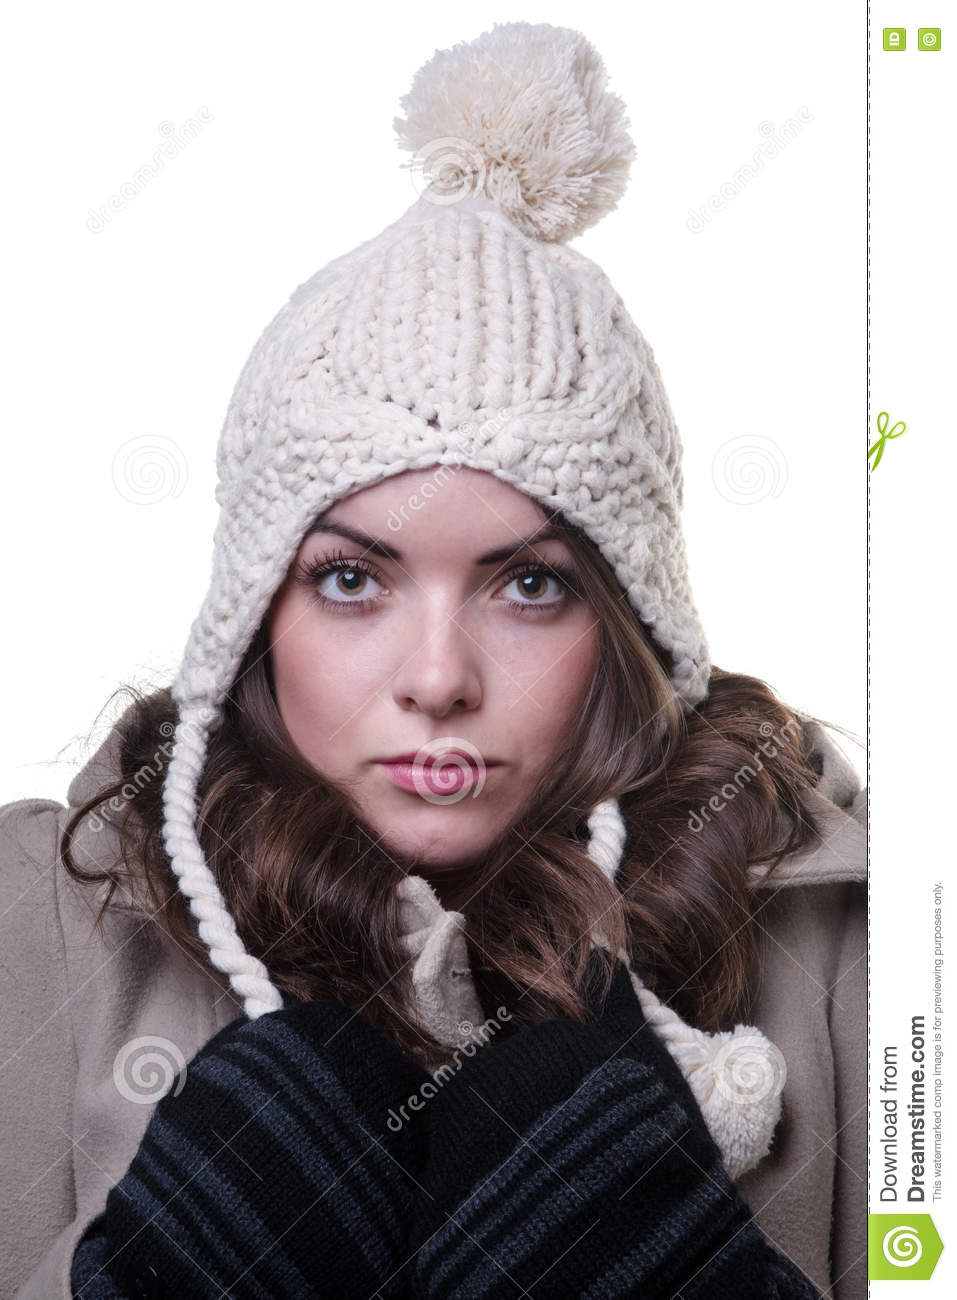 2a0717c6251 Woman Wearing Winter Clothes Stock Photo - Image of knitted